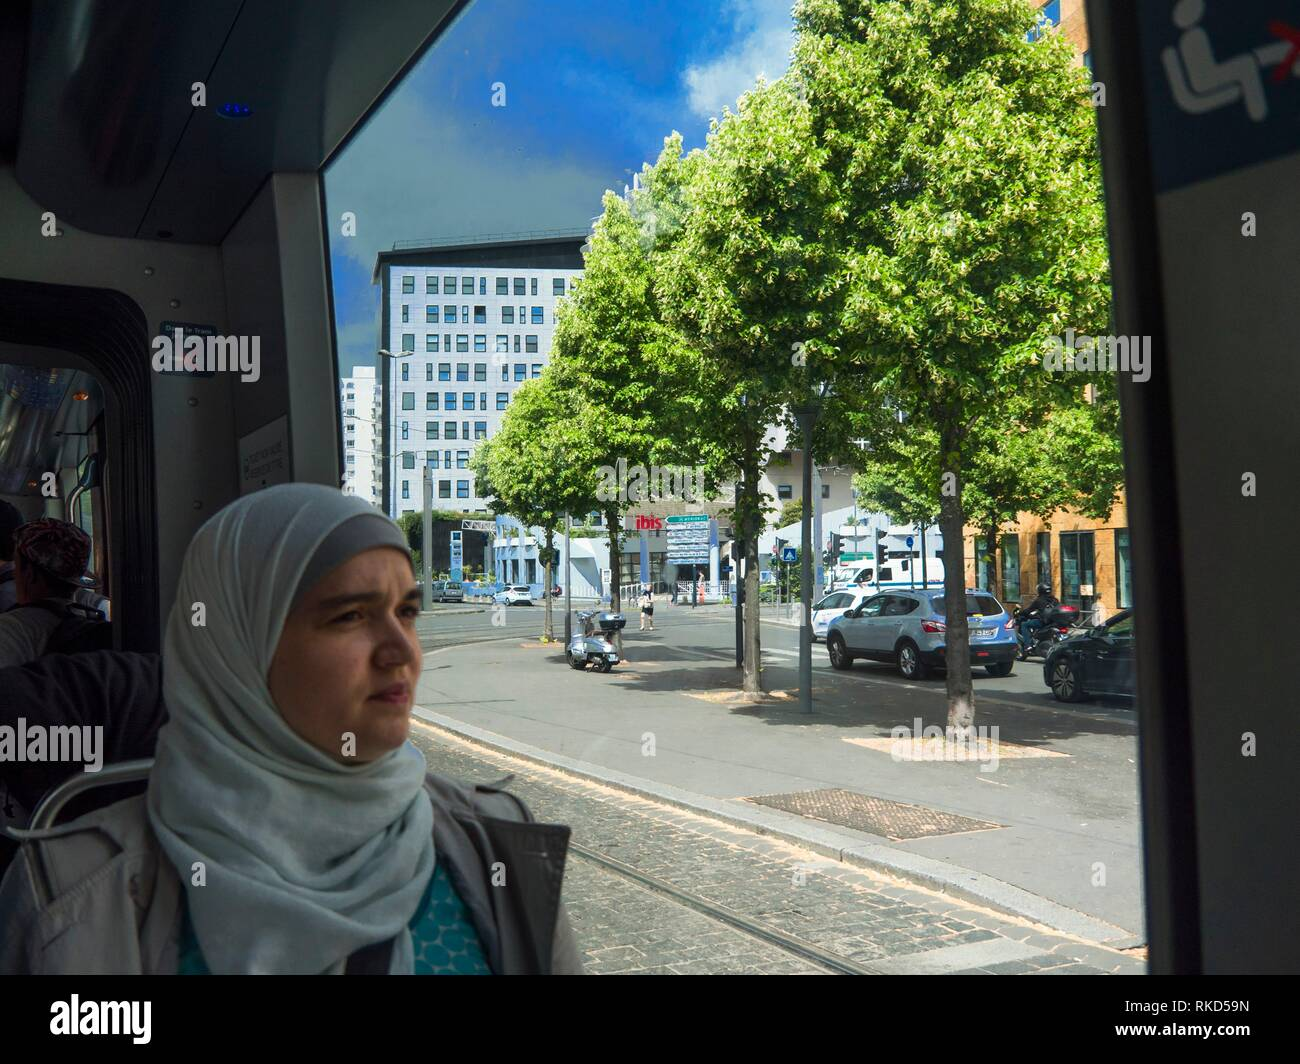 France, Nouvelle Aquitaine, Gironde. Woman with a ´Hijab´ in a tram at Bordeaux. A hijab is a veil traditionally worn by Muslim women in the presence - Stock Image